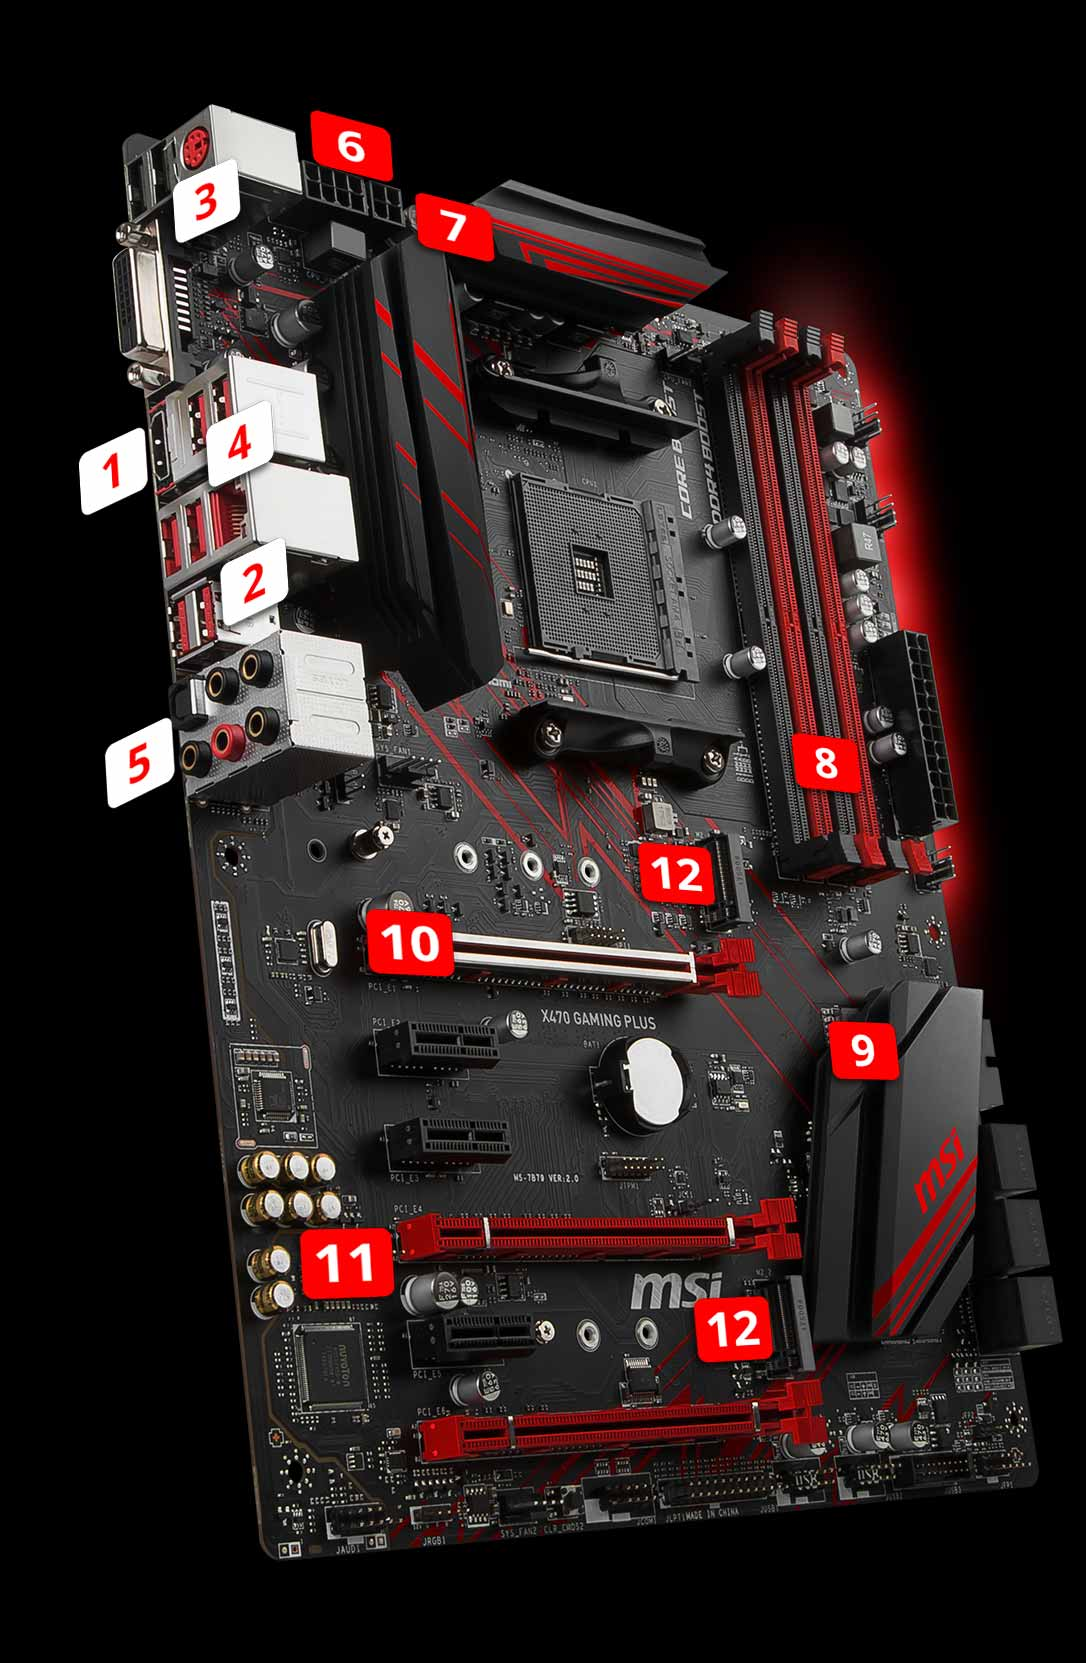 X470 GAMING PLUS | Motherboard - The world leader in motherboard